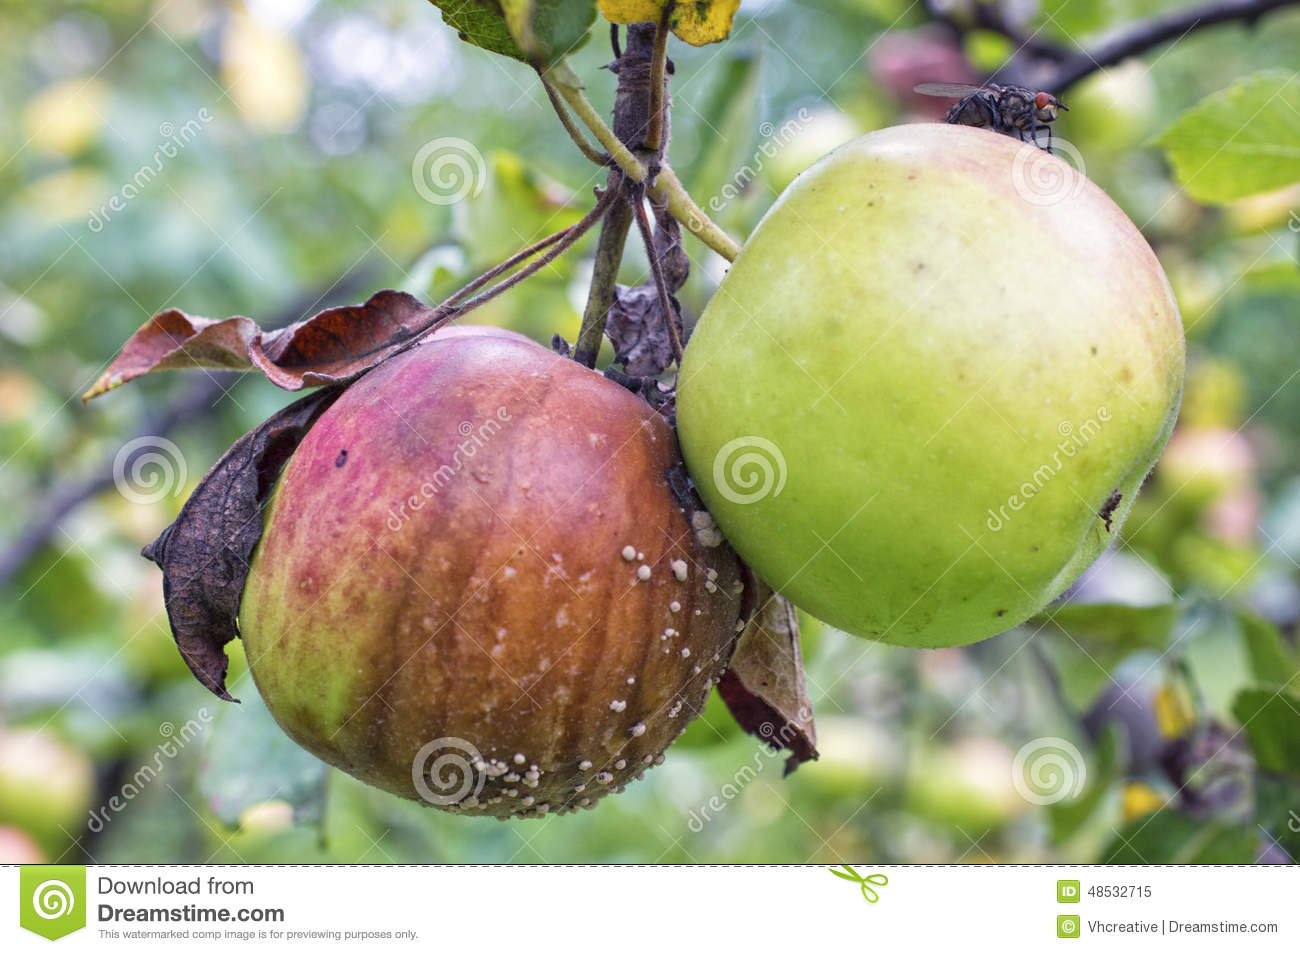 the pomaceous fruit of the apple {malus sieversii – apple tree} the apple tree originated in central asia, where its wild ancestor, malus sieversii, is still found today the apple is the pomaceous fruit of the apple tree in the rose family, rosaceae.